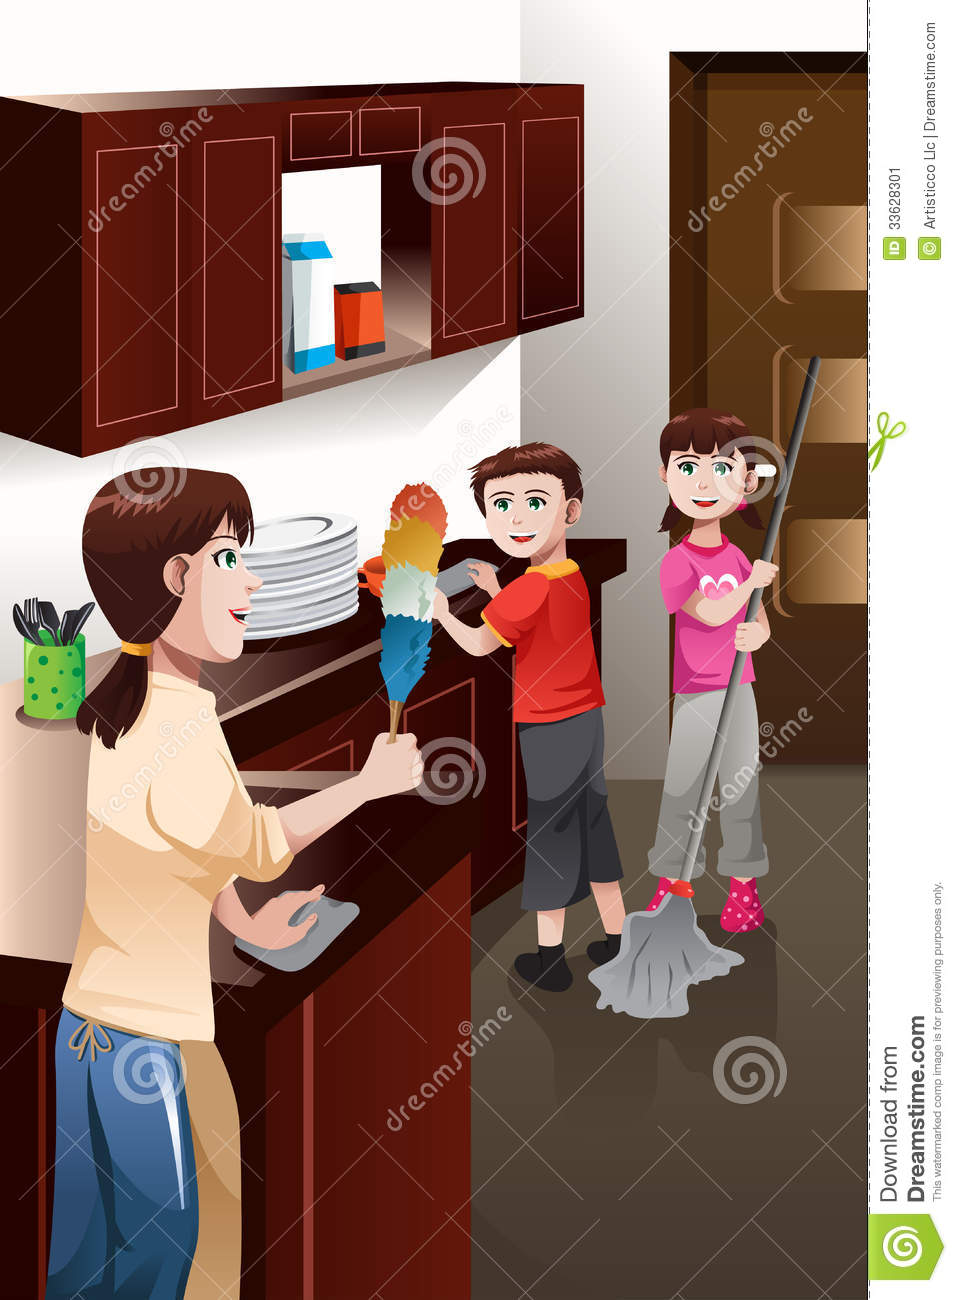 kids helping their parent cleaning house stock vector - illustration